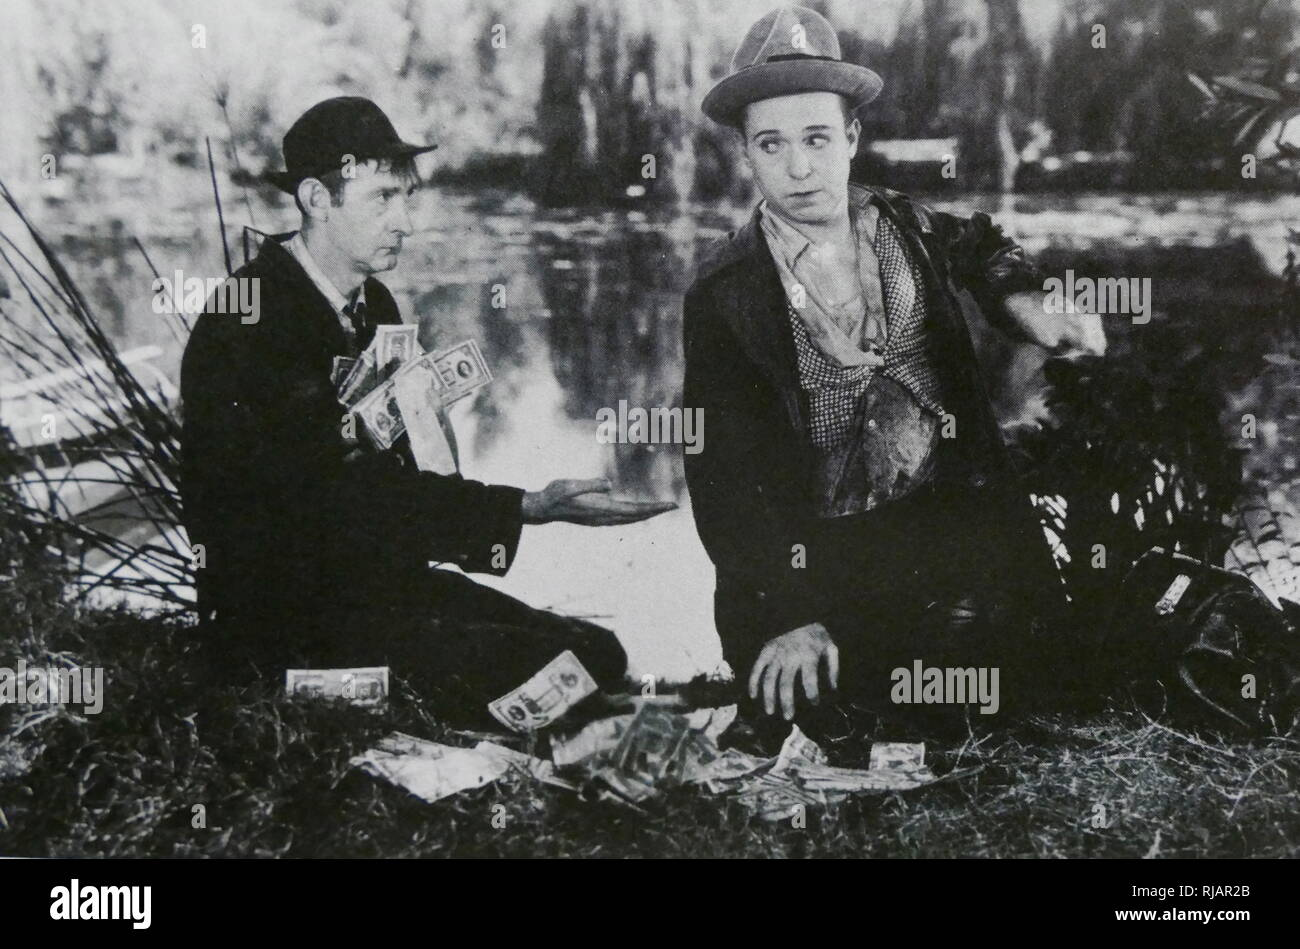 See America Thirst is a 1930 comedy film produced and distributed by Universal Pictures and directed by William James Craft. Silent comics Harry Langdon and Slim Summerville star along with silent actress Bessie Love. Though released late in 1930, it nevertheless had a silent version - Stock Image